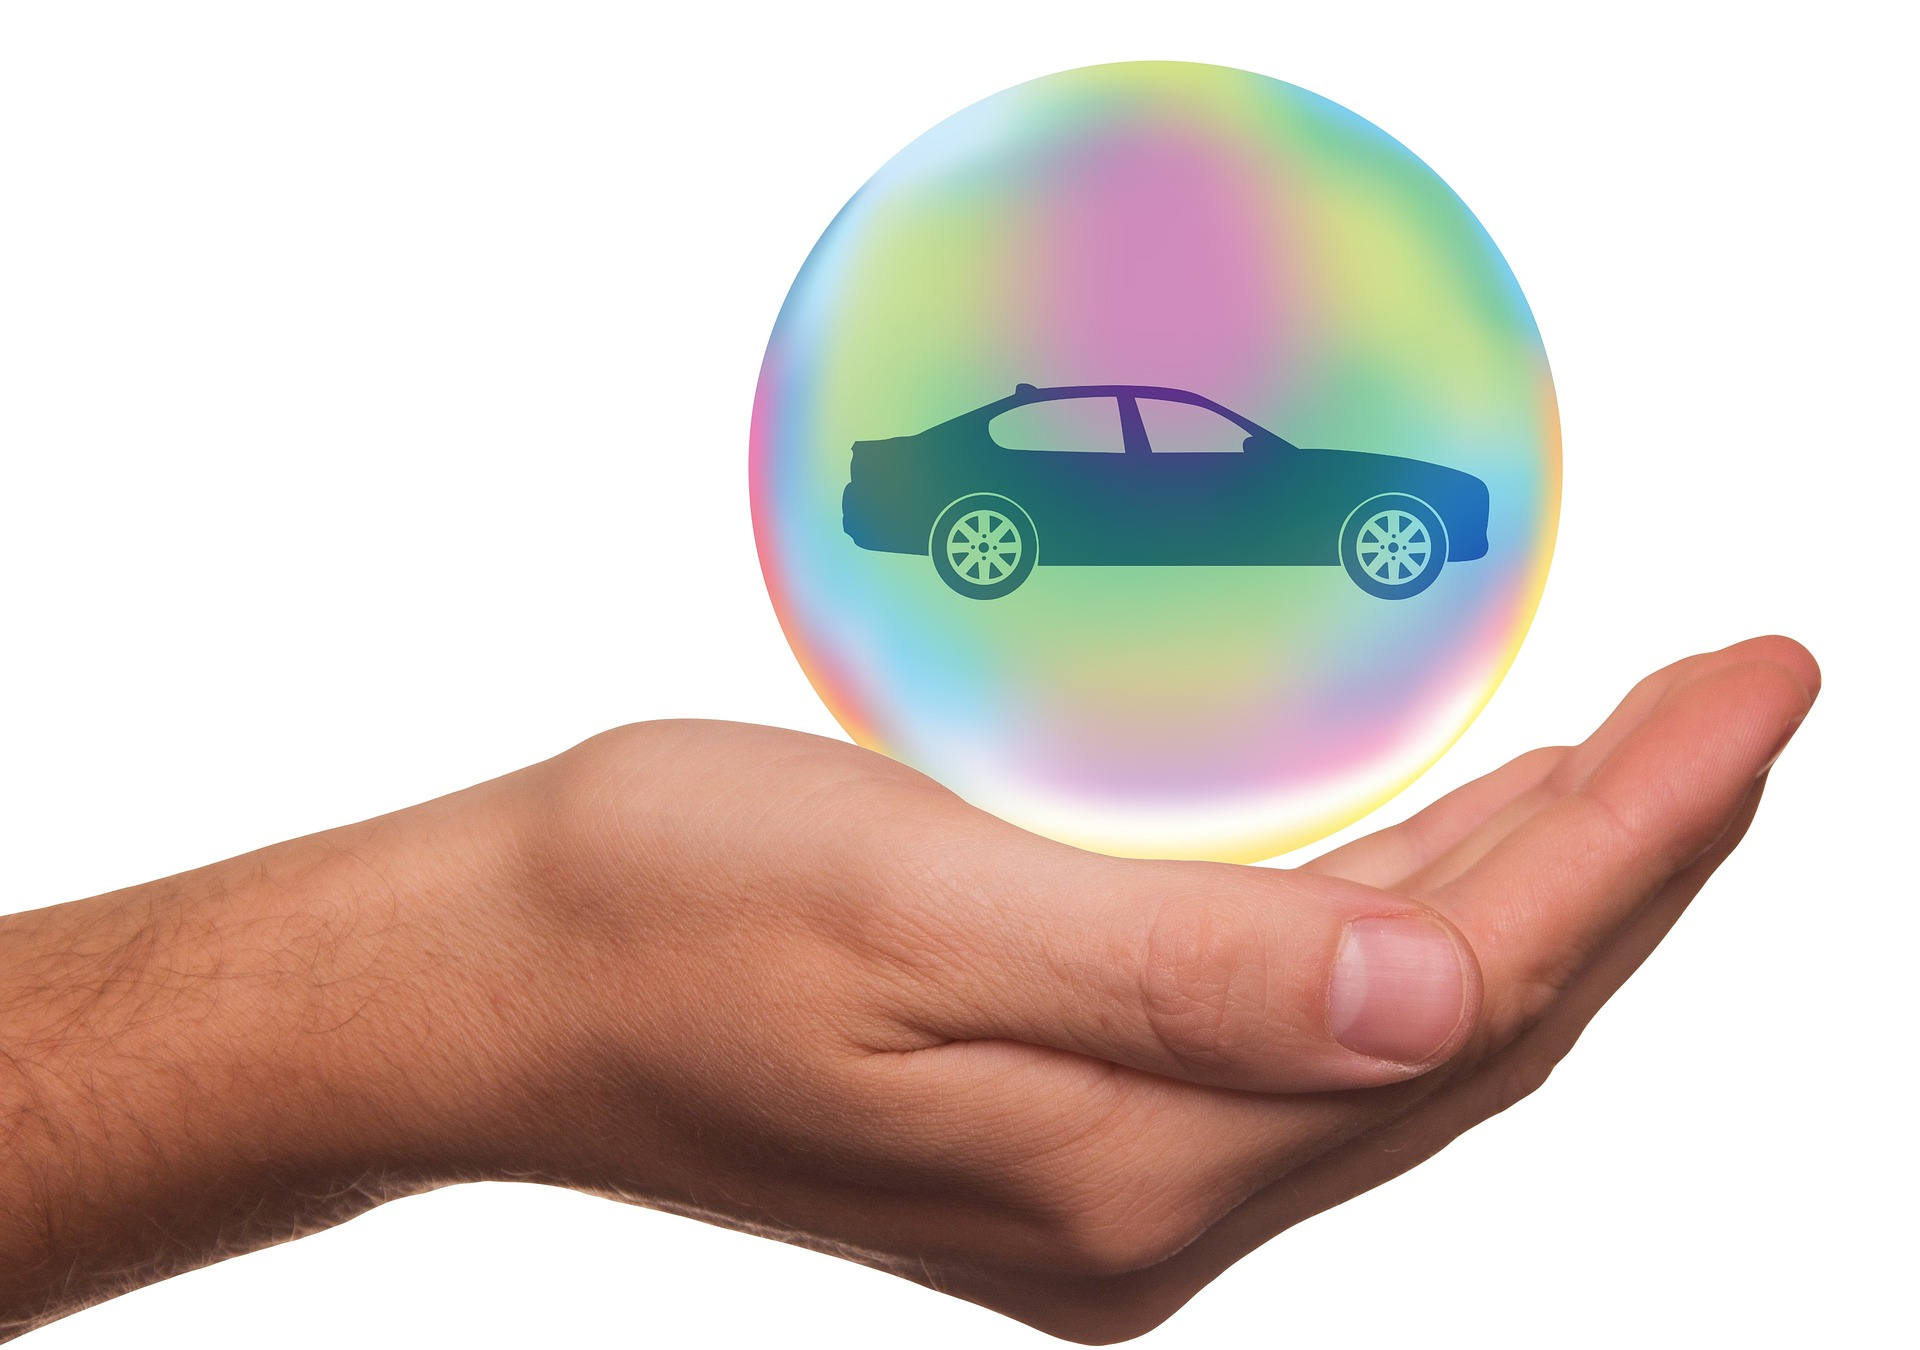 Auto insurance in Colorado Springs with hand covering car in bubble. Protect your car!